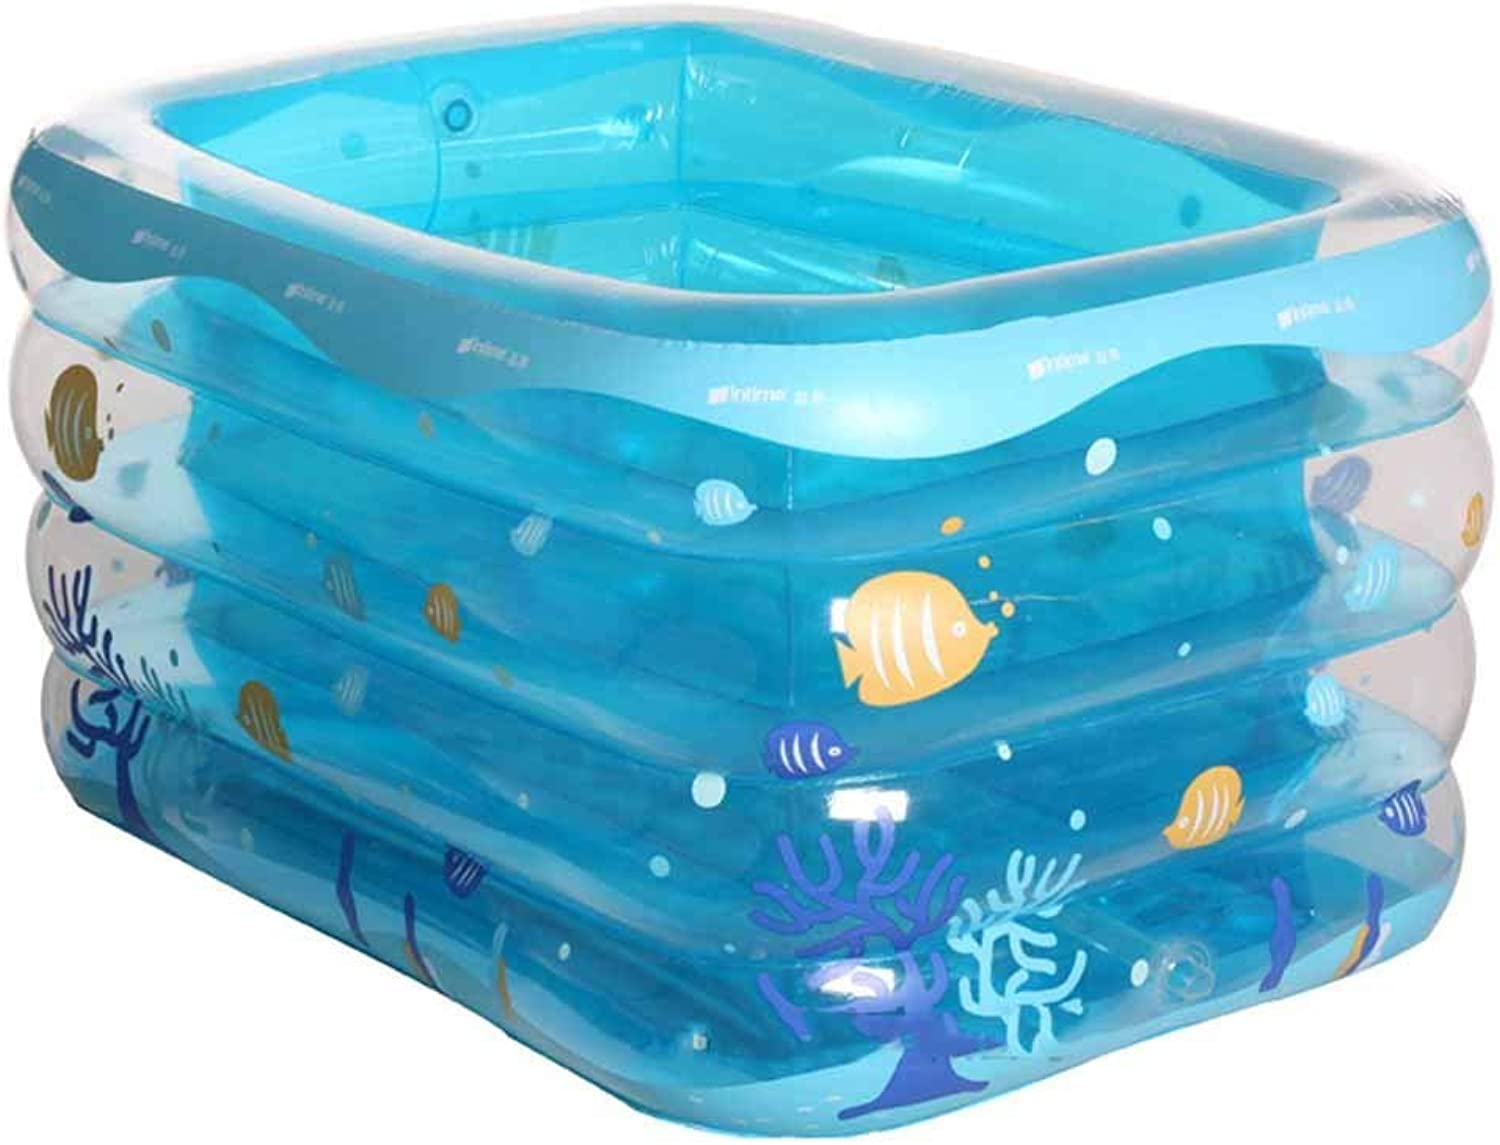 Home practical bathtub Infant and toddler inflatable pool Thicker long side plus baby puzzle pool Bathtub (color   bluee, Size   120cm)